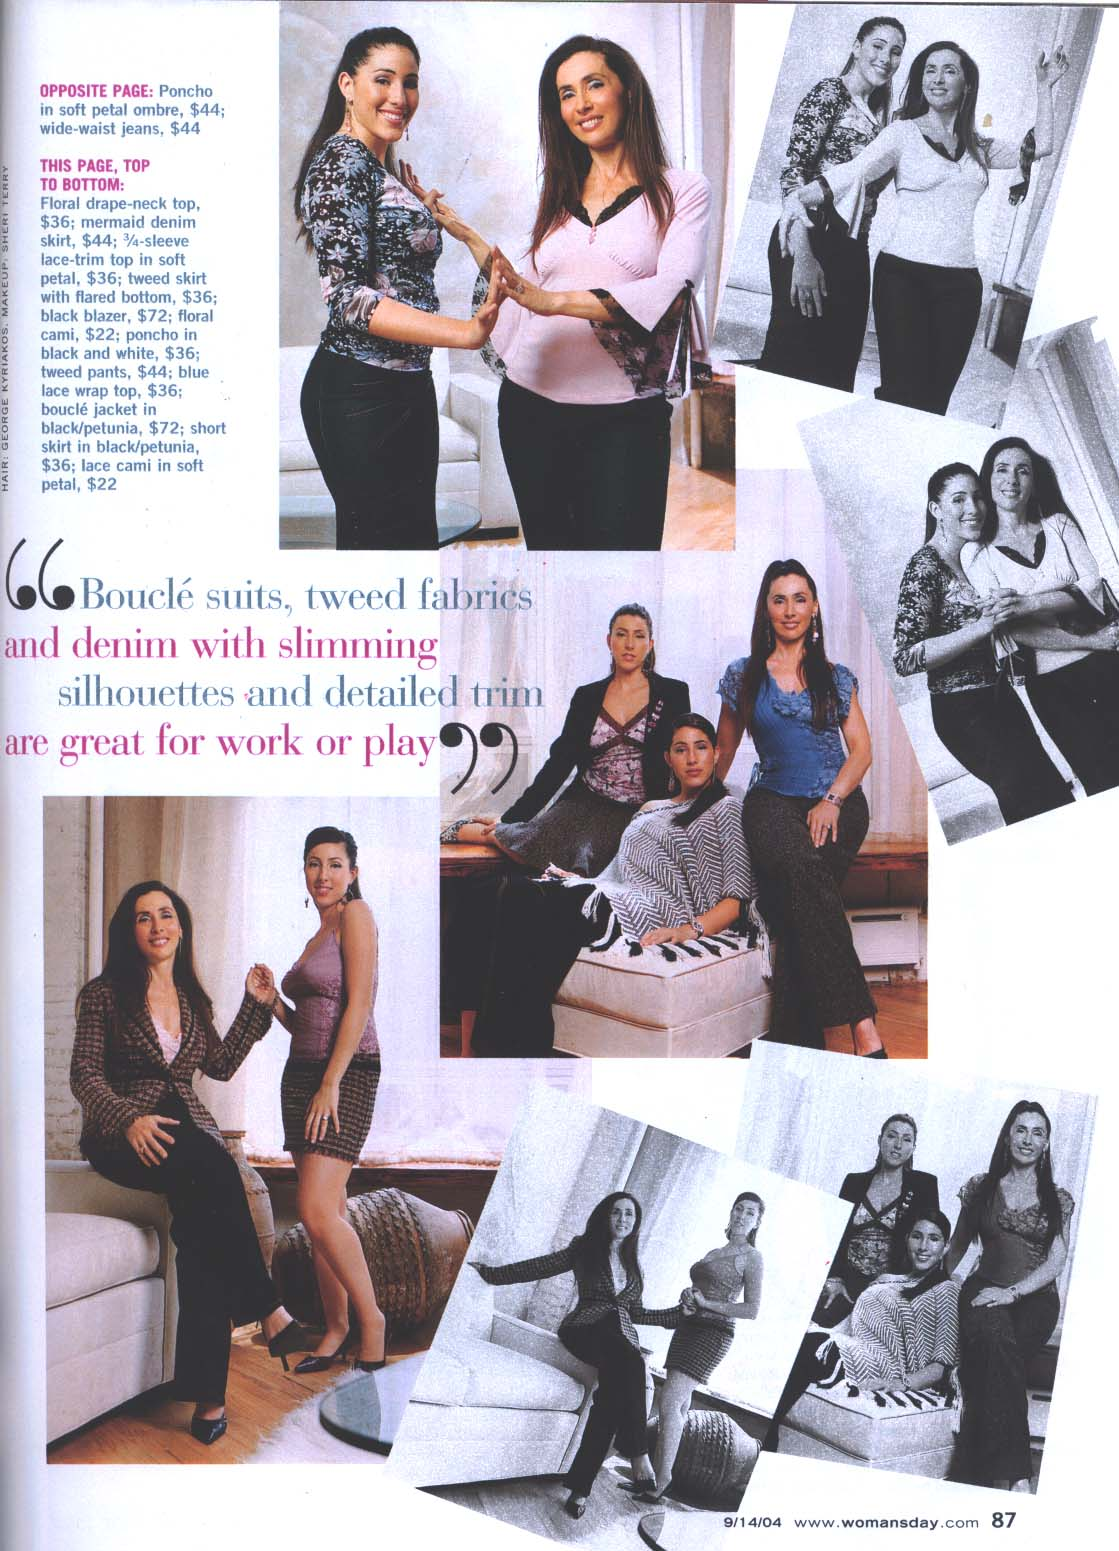 Woman's Day - page 2.jpg